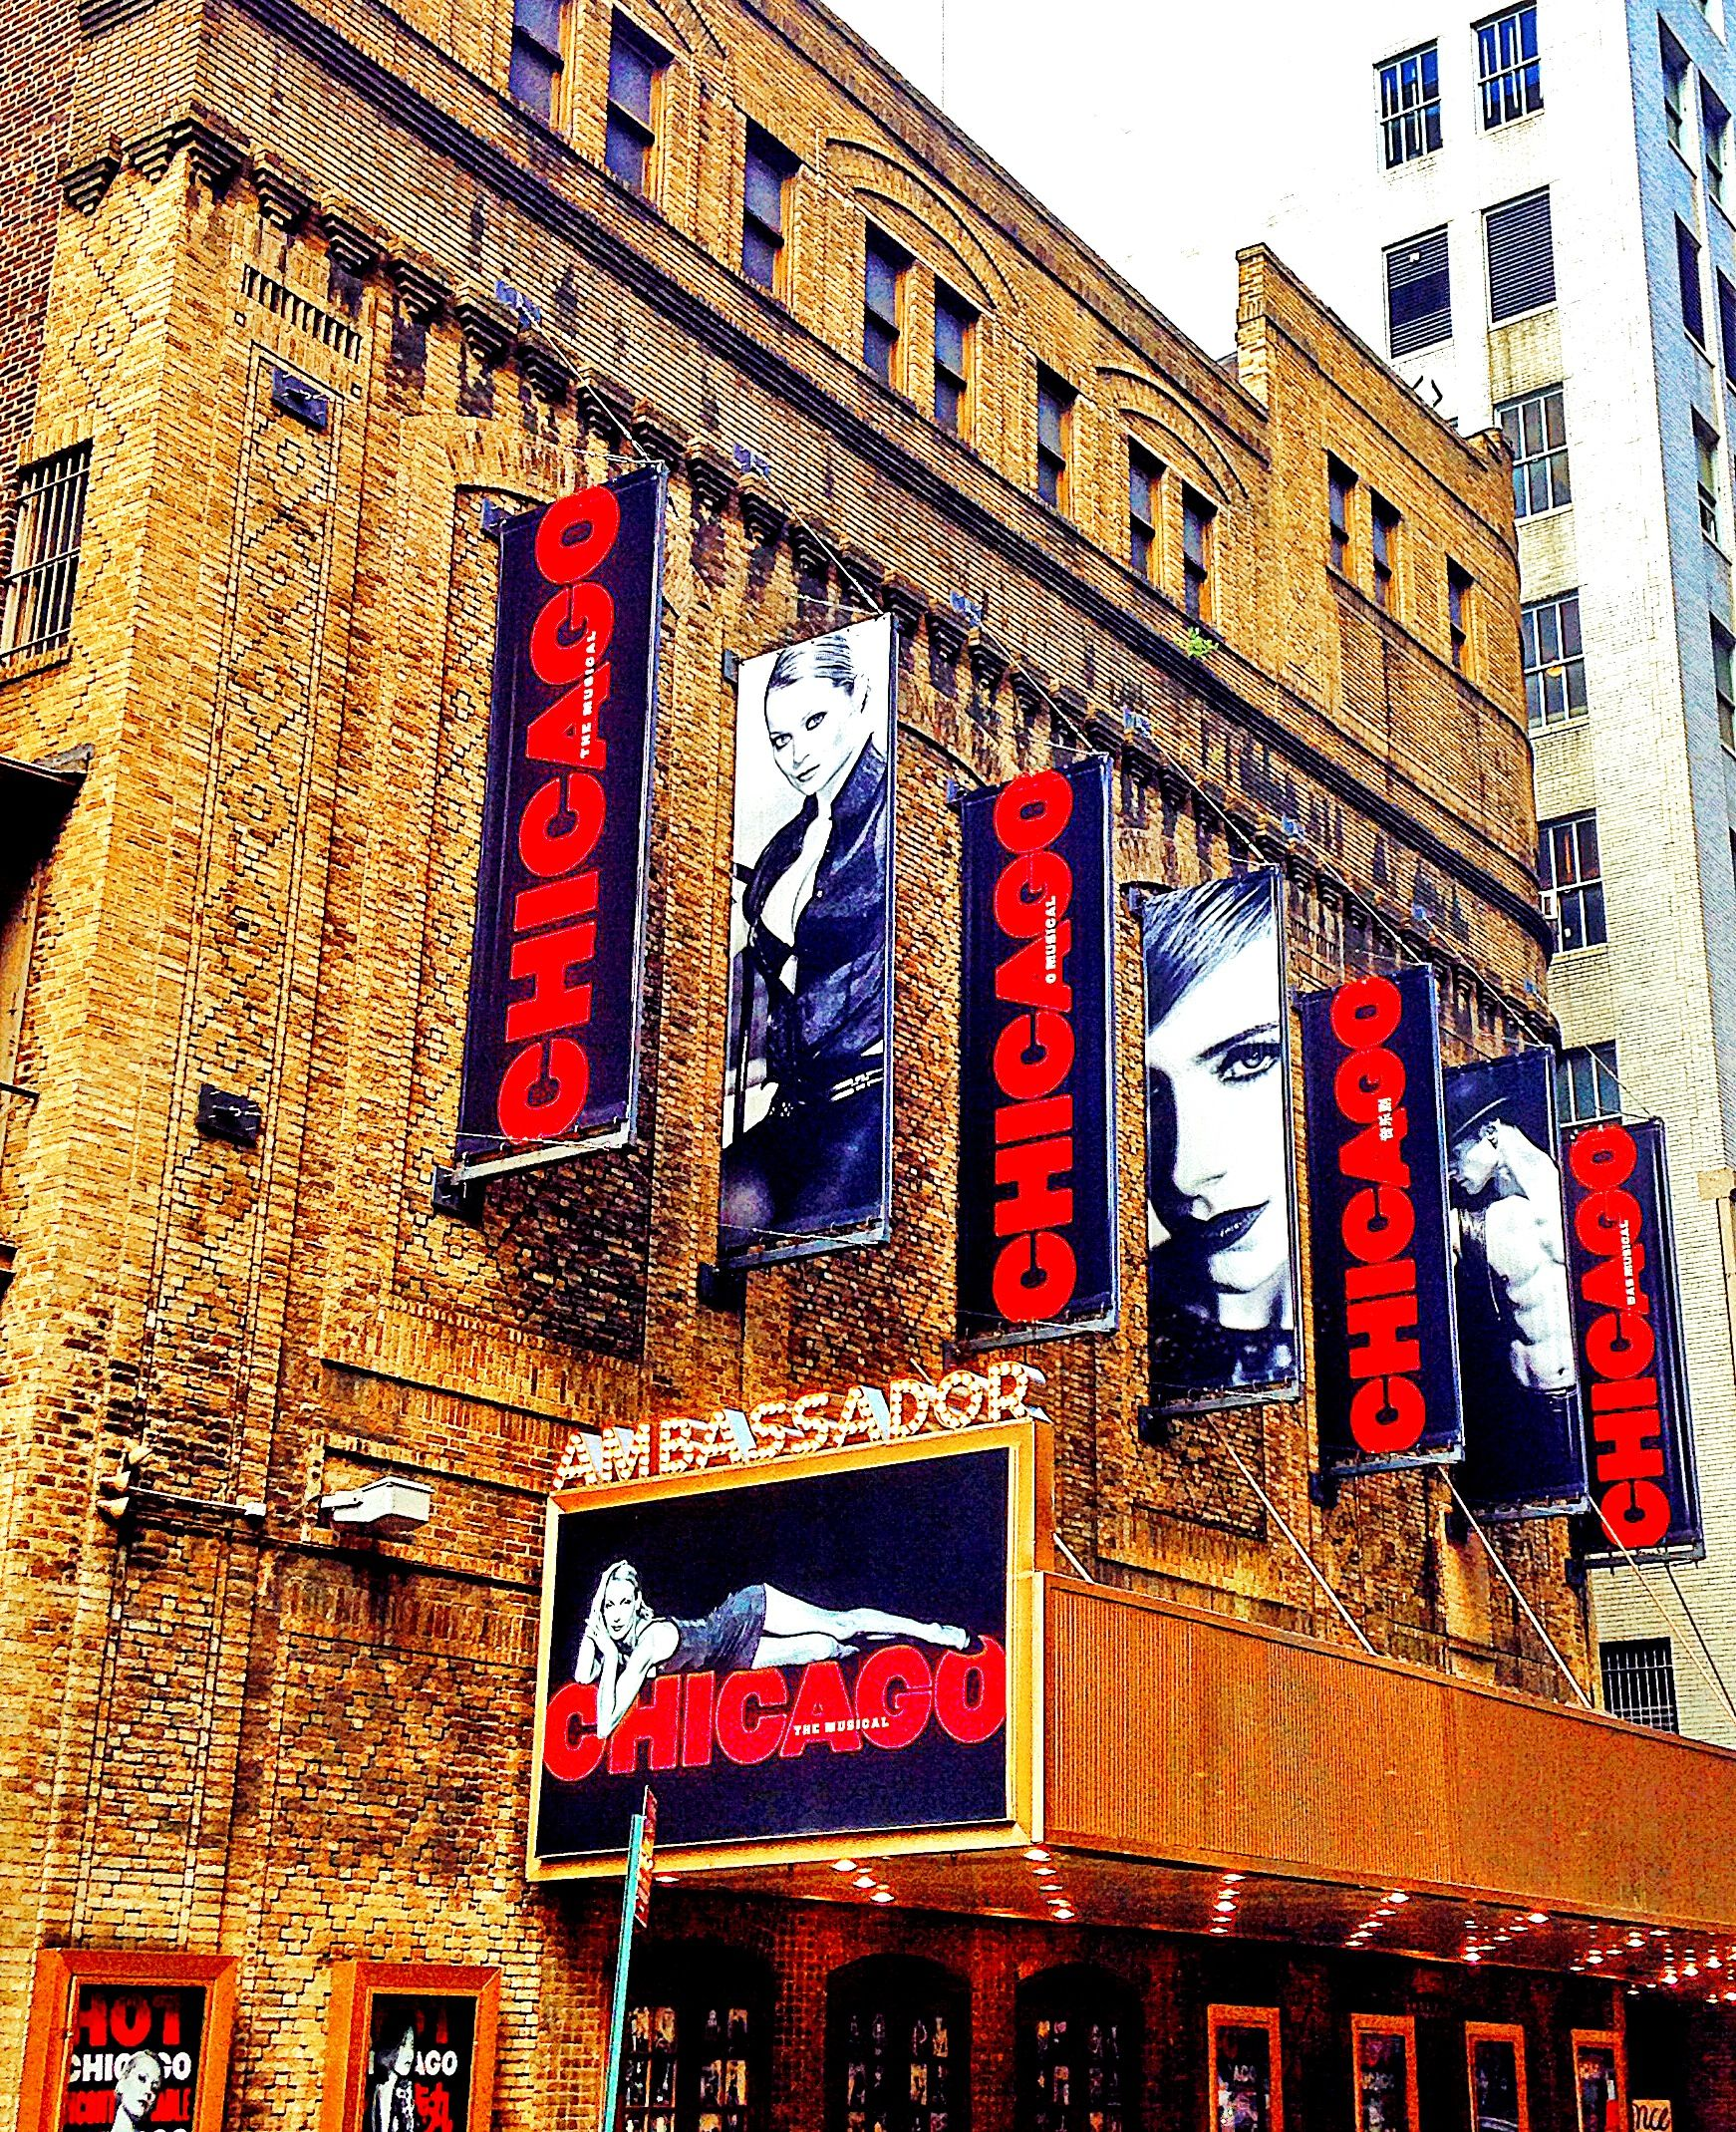 Chicago At The Ambassador Chicago Broadway Newyork Marquee Theatre Theater Broadwaylights Greatwhiteway Stage Theatree Movie Marquee Broadway Chicago